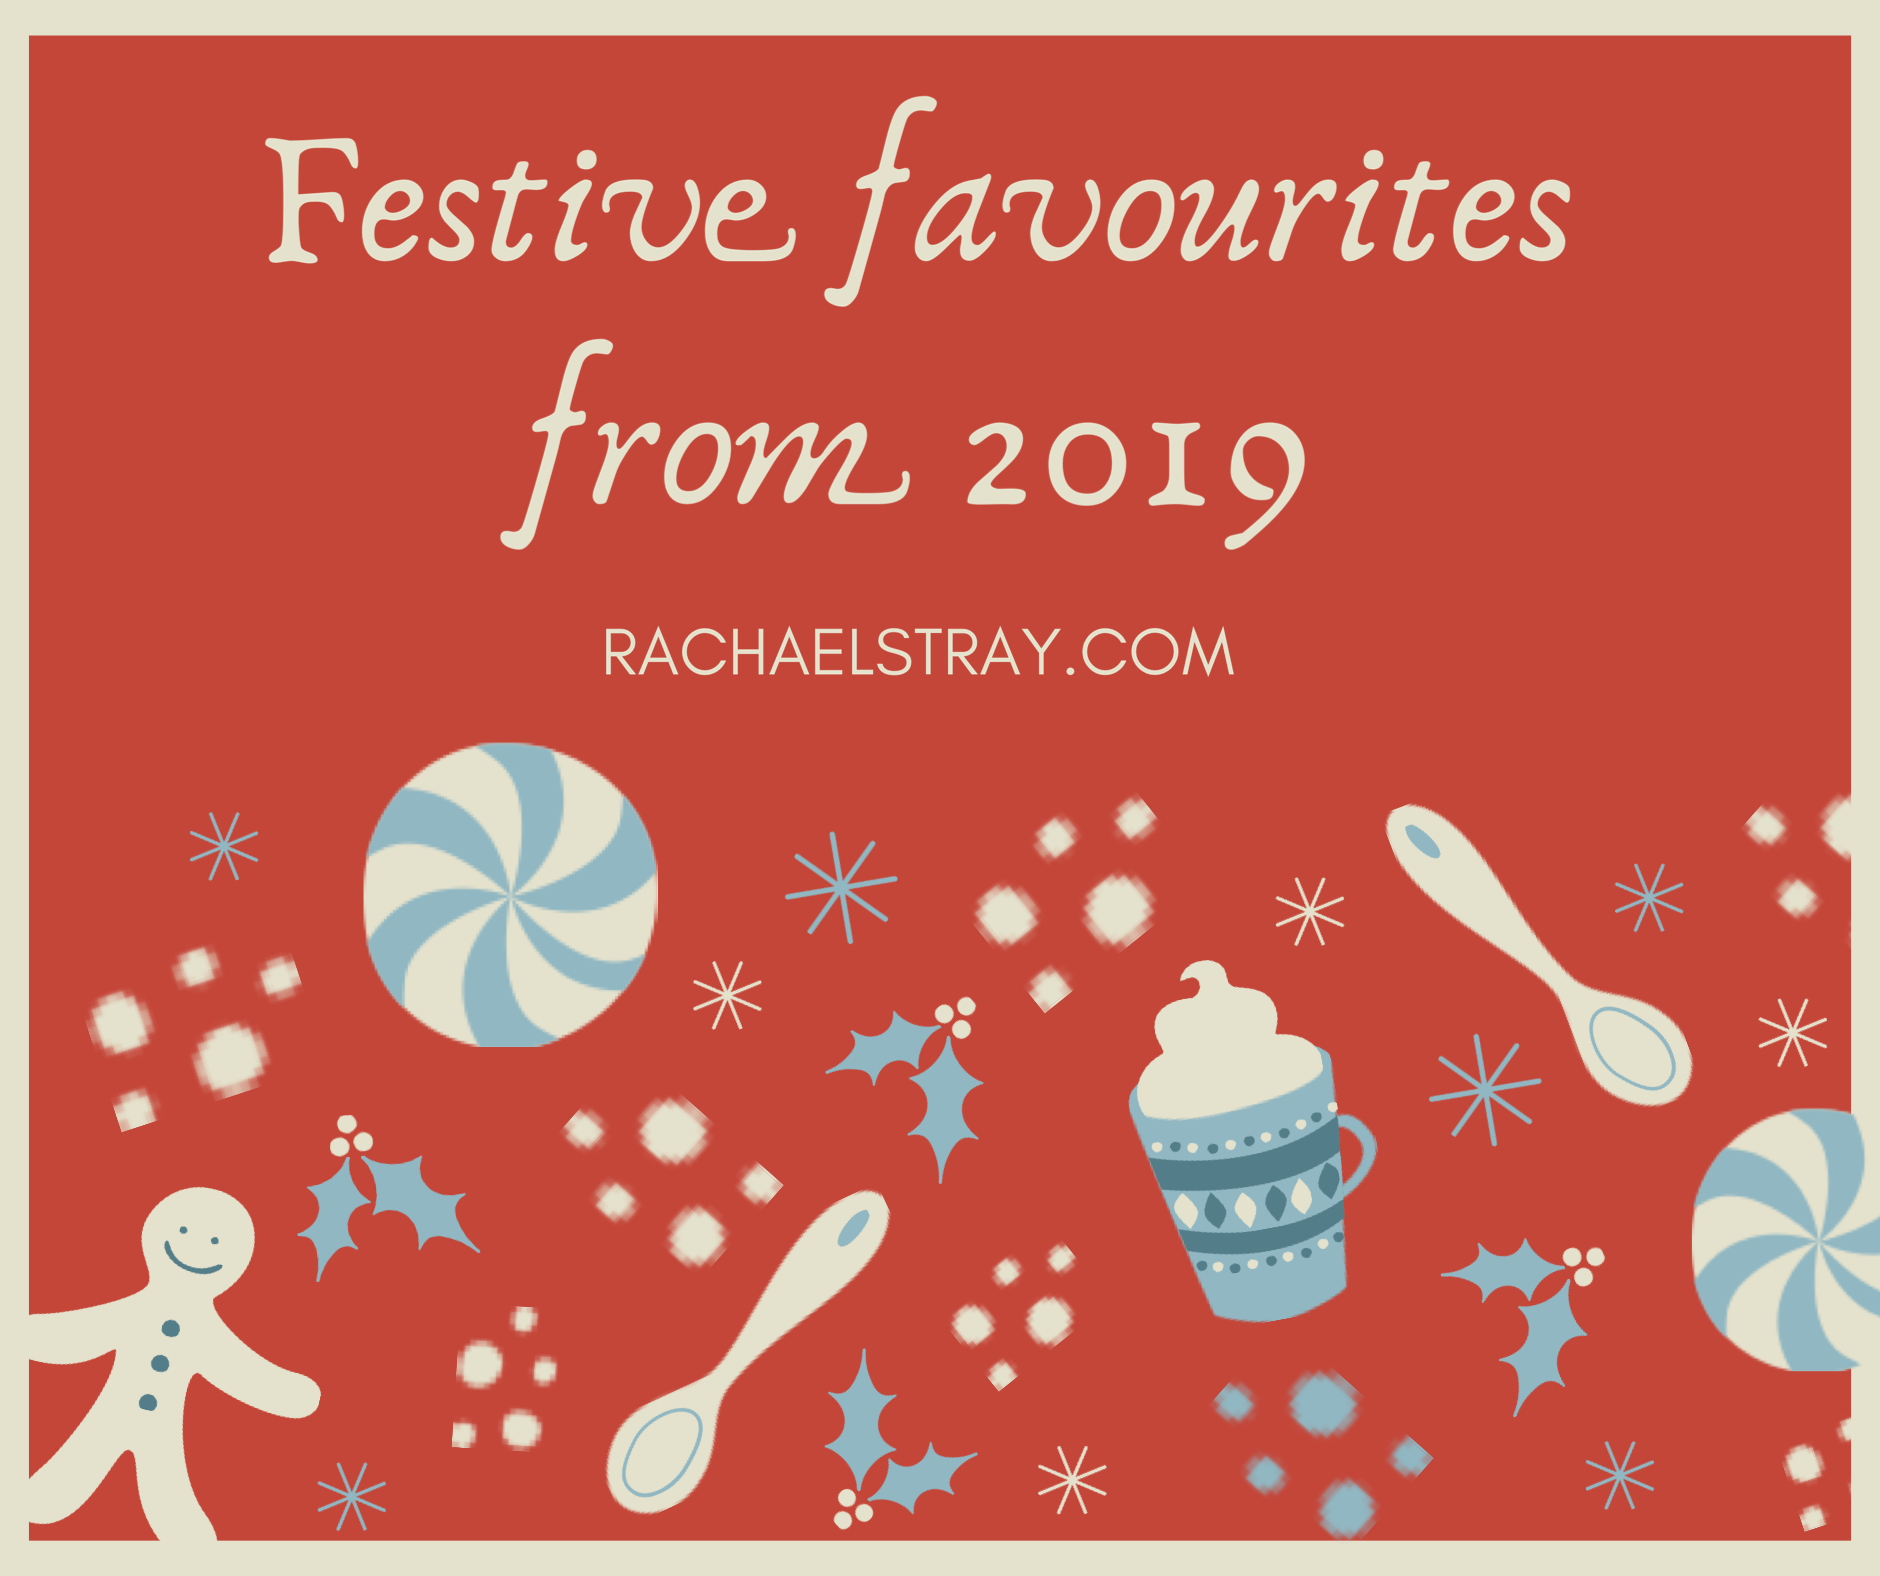 Festive favourites from 2019